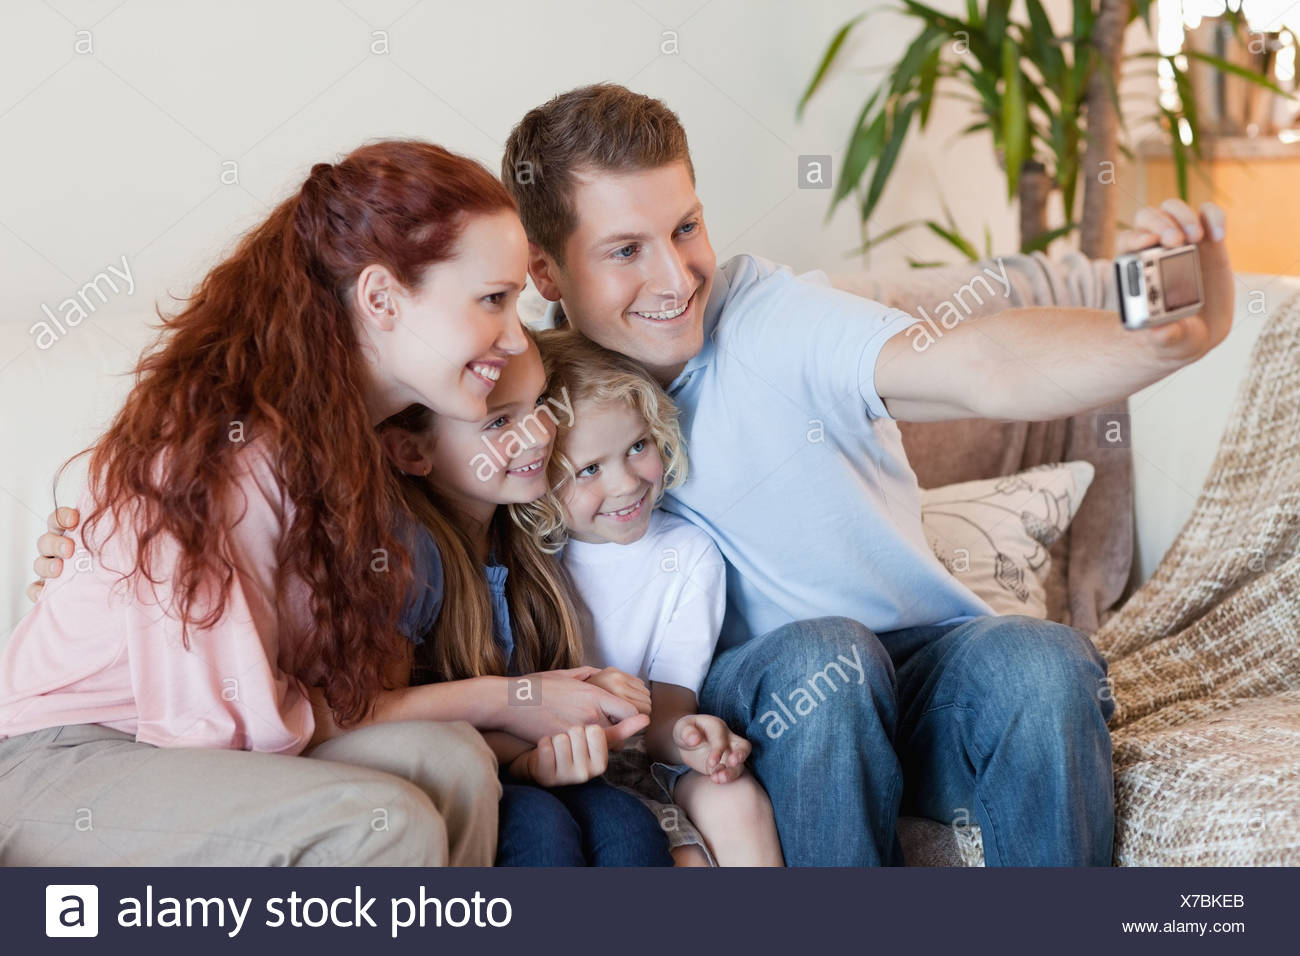 Father taking family photography - Stock Image